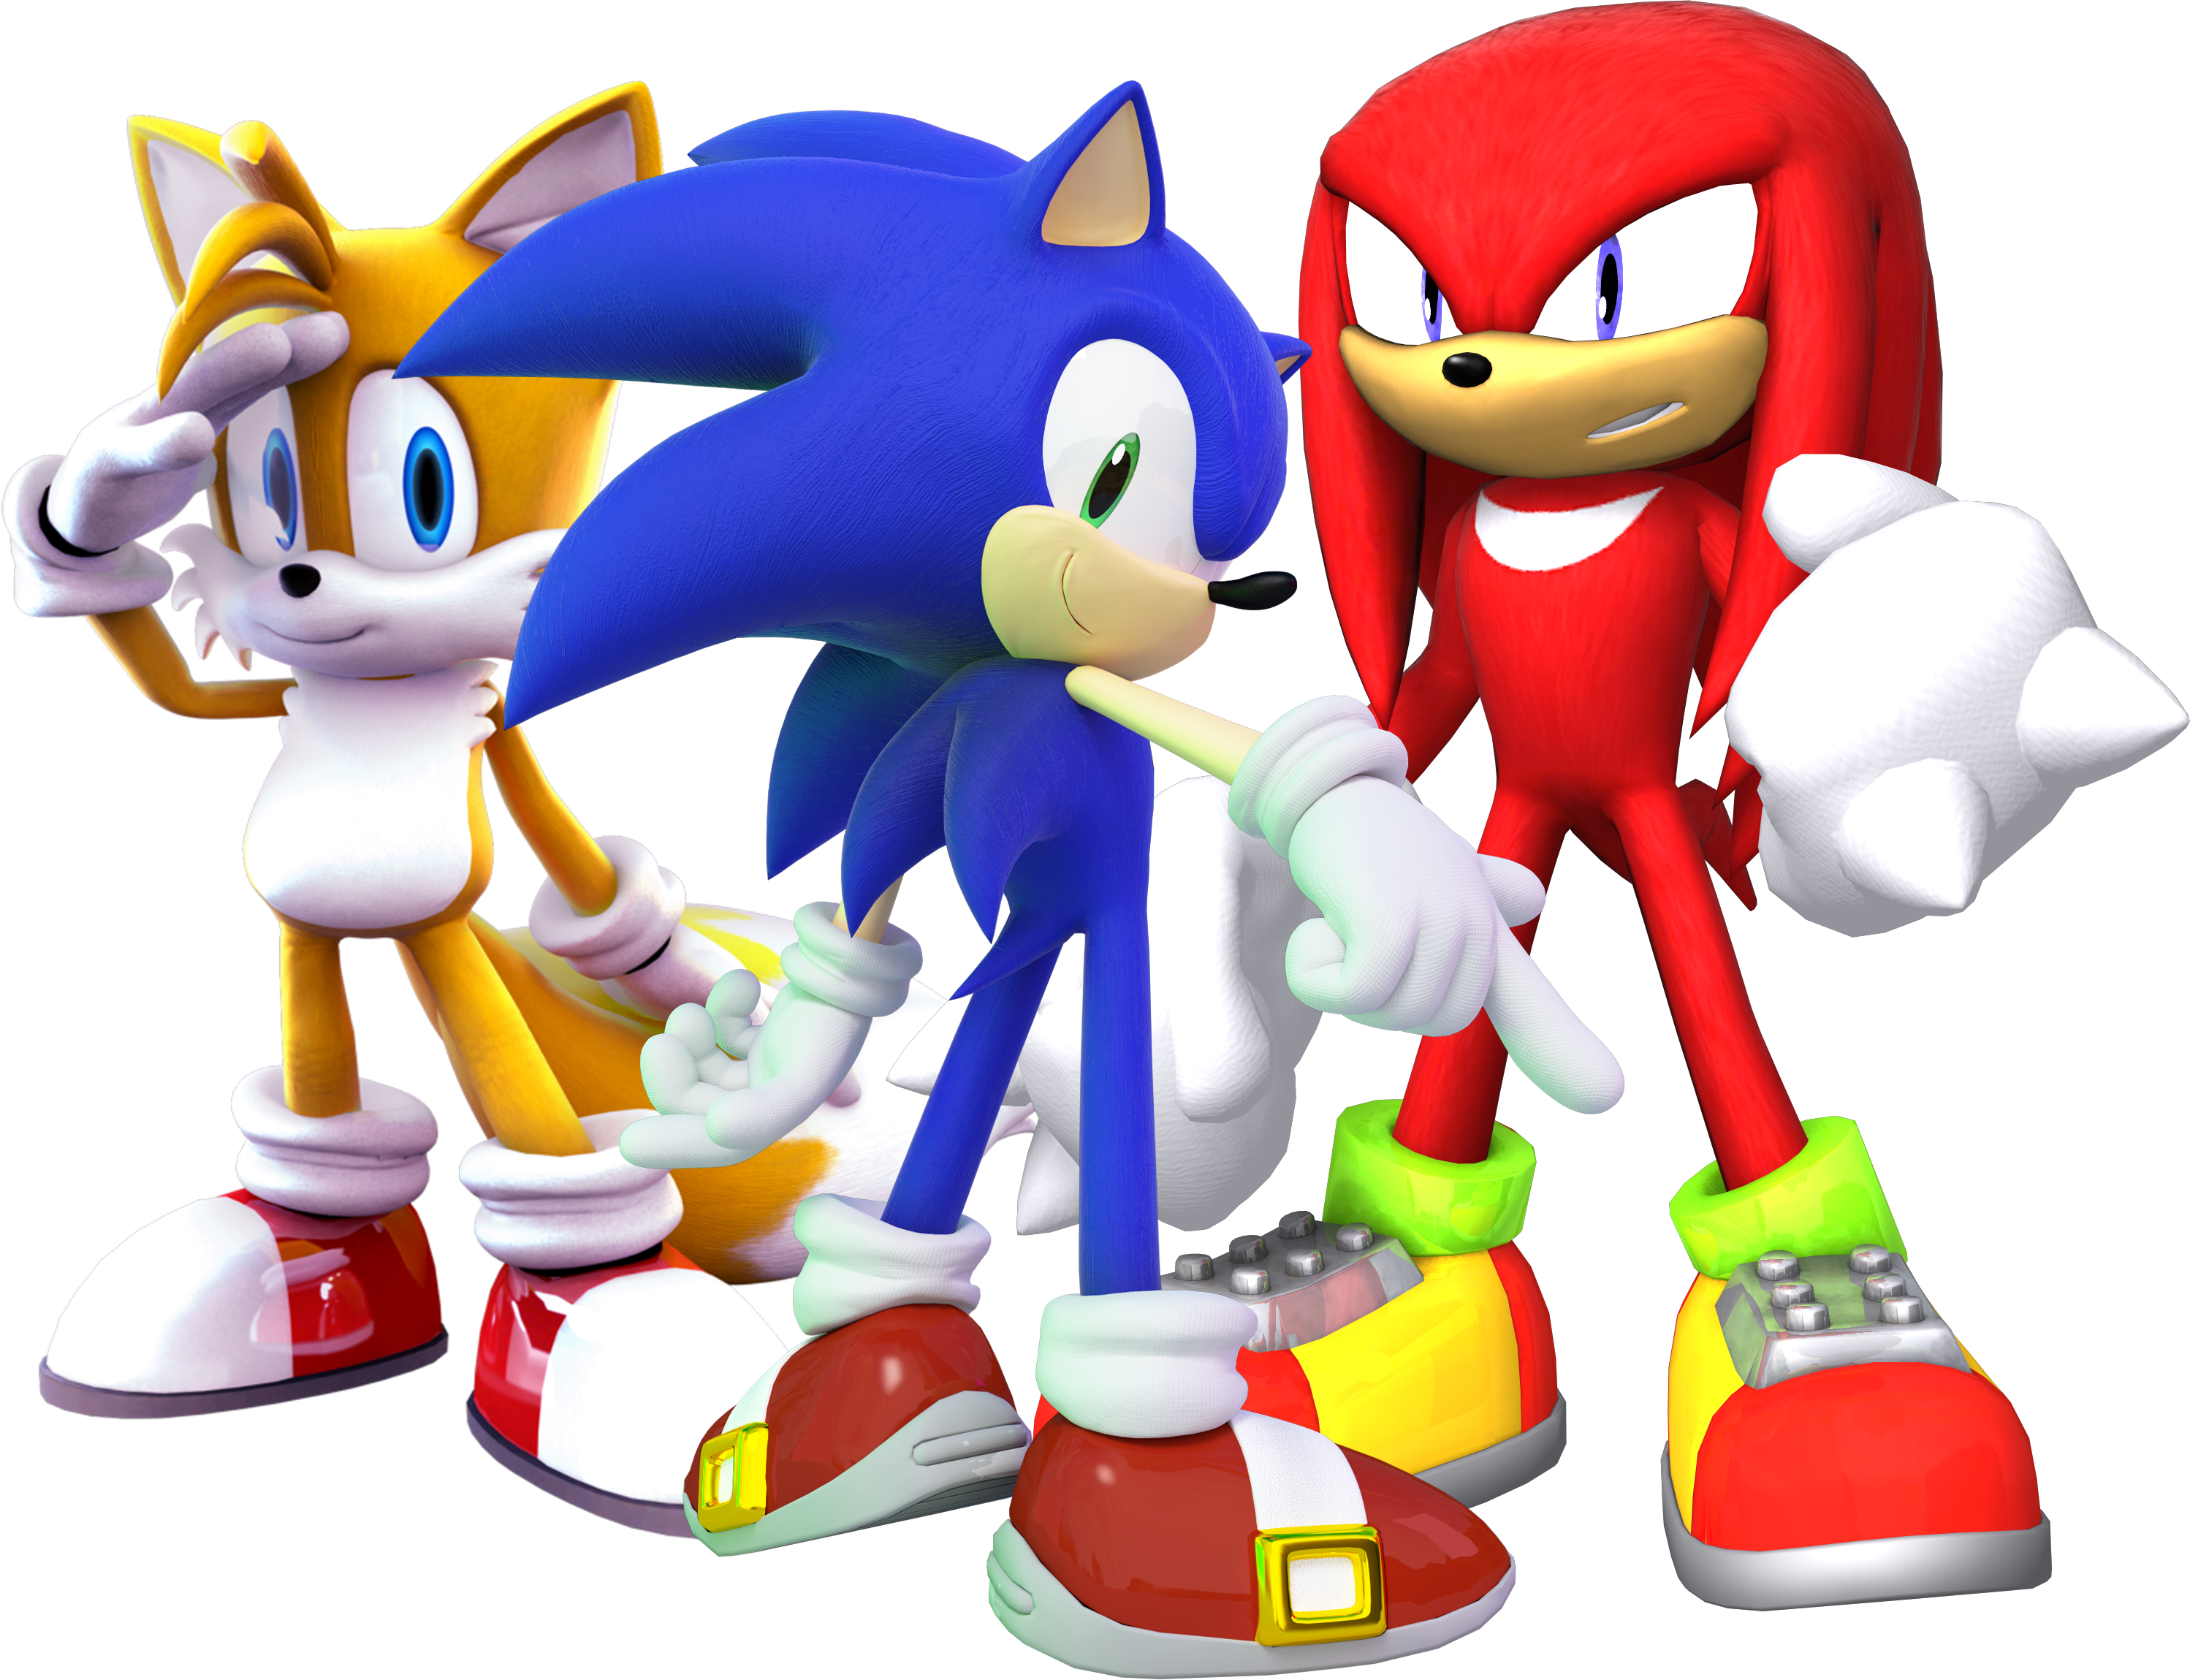 Download Sonic Olympic Toy Character Knuckles Fictional Mario Hq Png Image Freepngimg